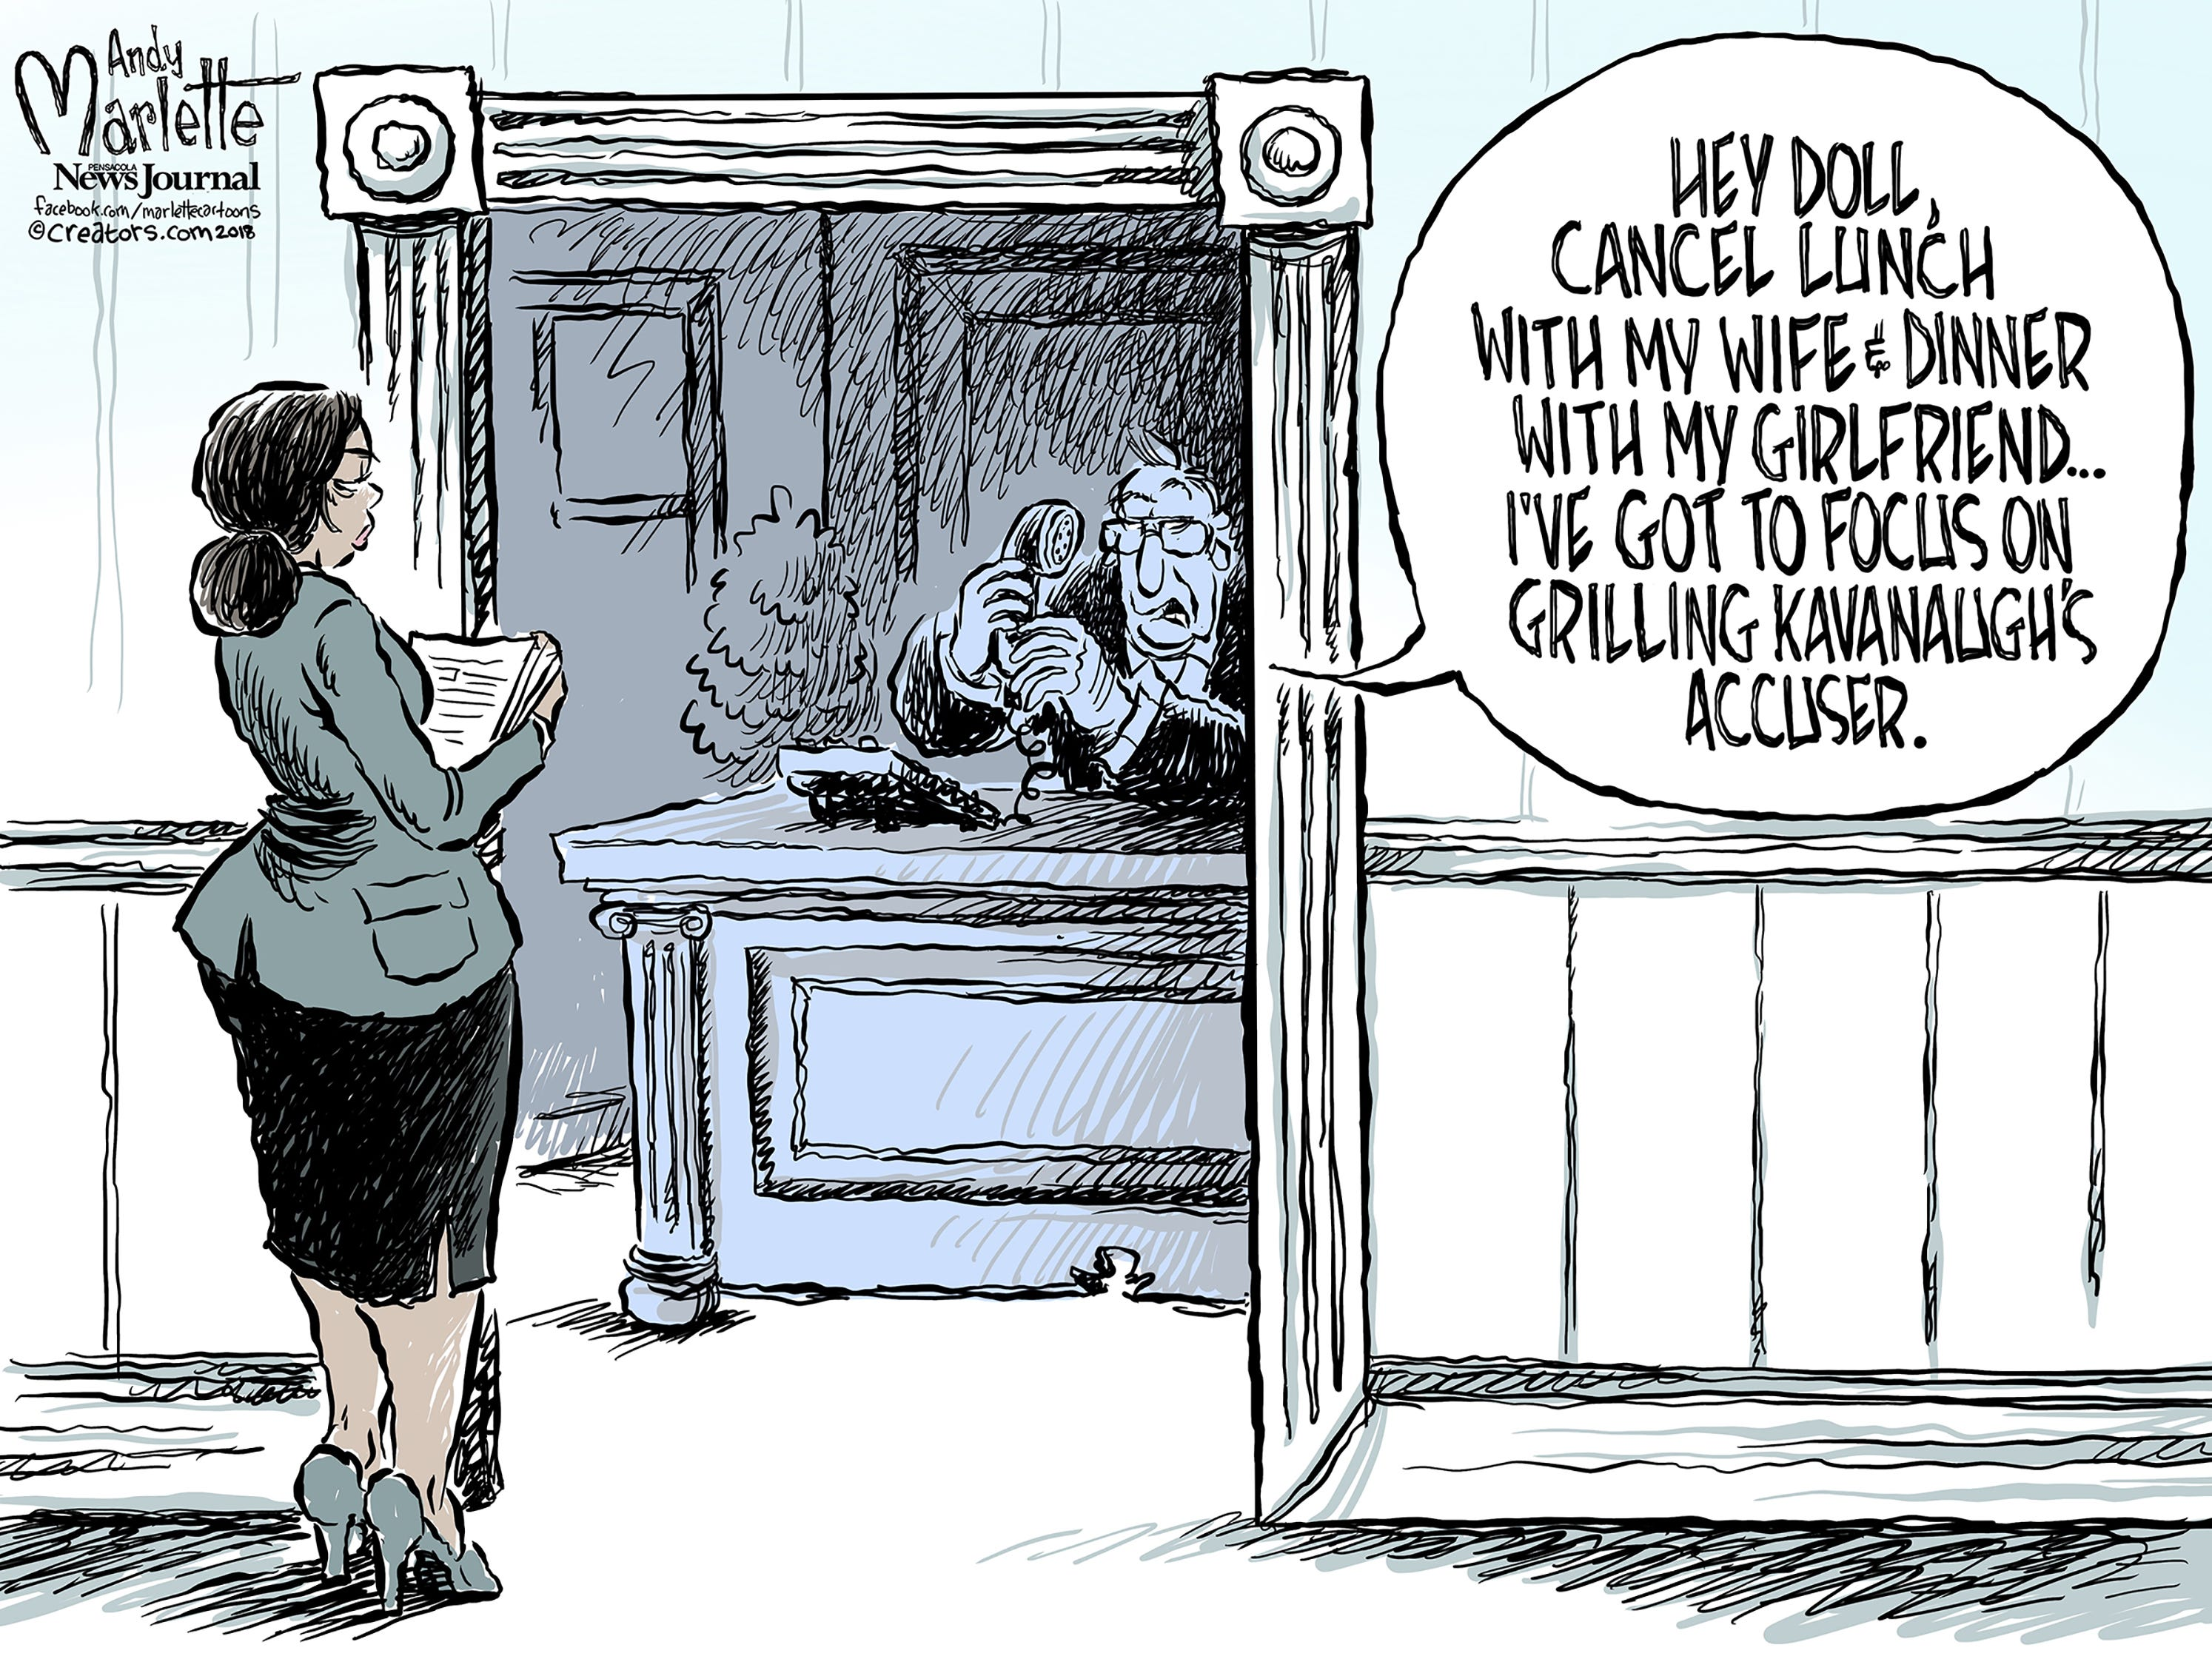 The cartoonist's homepage, pnj.com/opinion